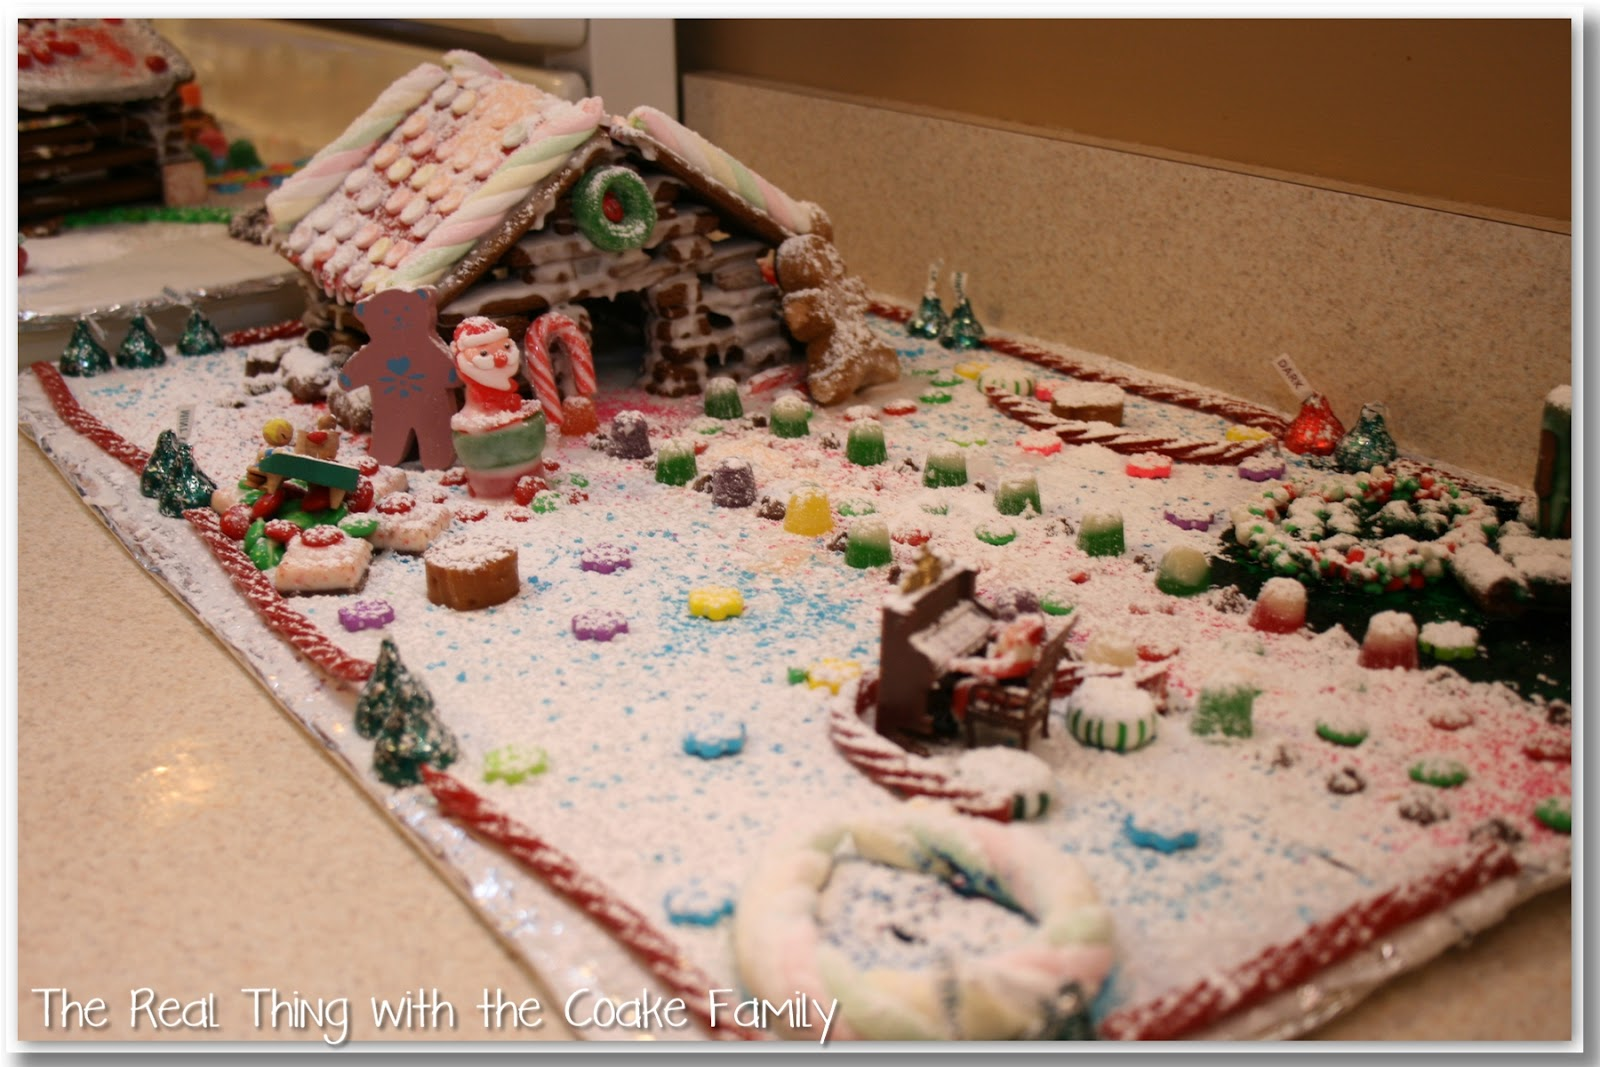 Christmas activities gingerbread house recipe the real thing with first let me show you our house we made this past weekend we got together with most of our east coast family this year we made 4 houses maxwellsz